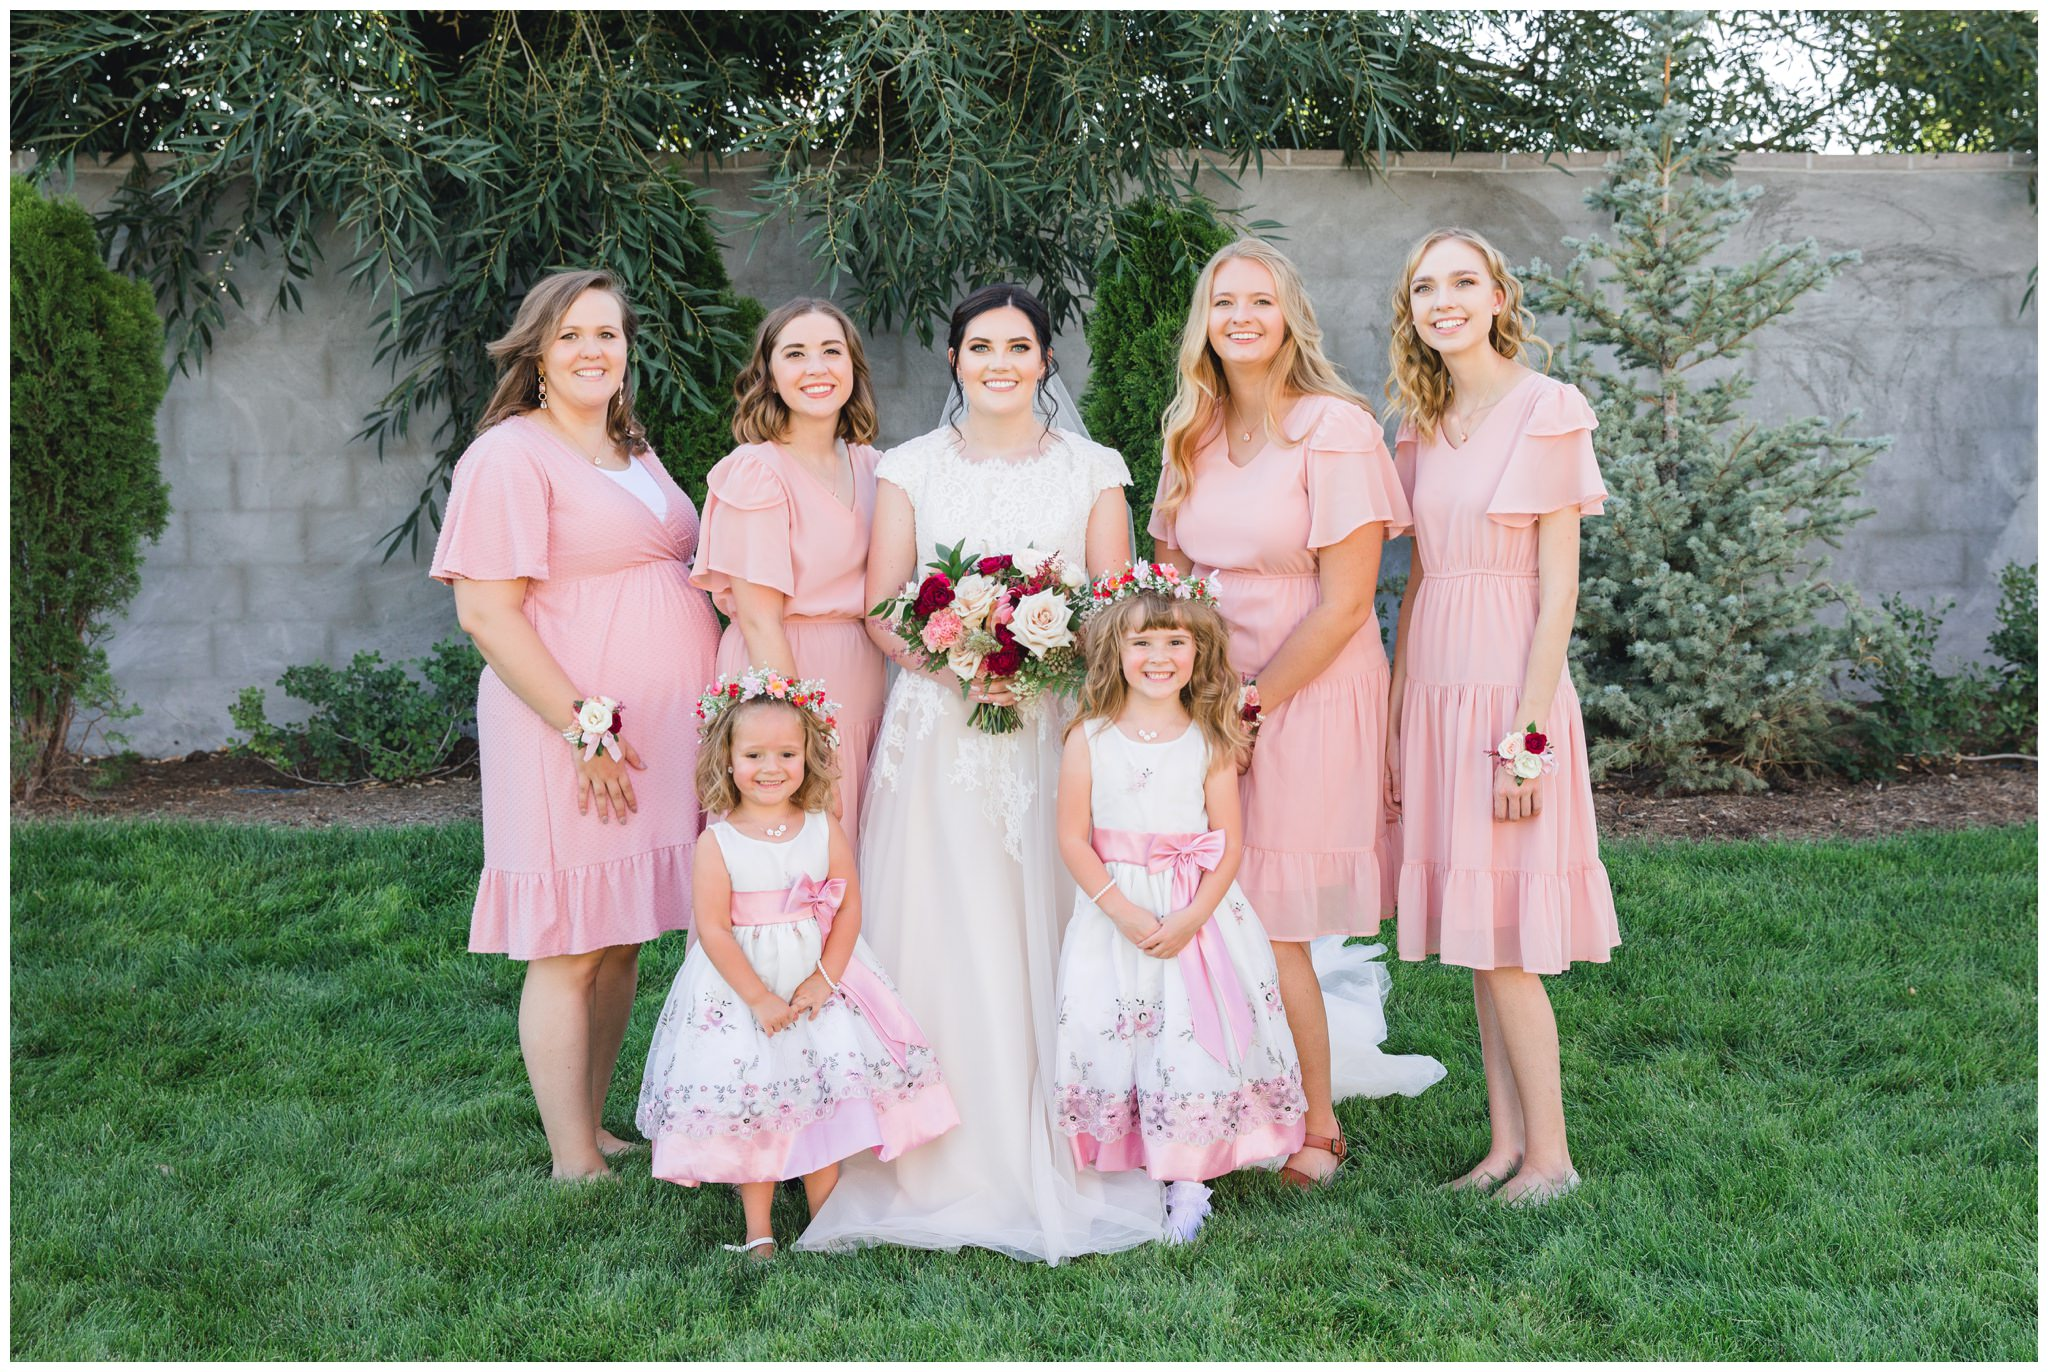 Bride posing with her bridesmaids and flowers girls at wedding in Lindon utah